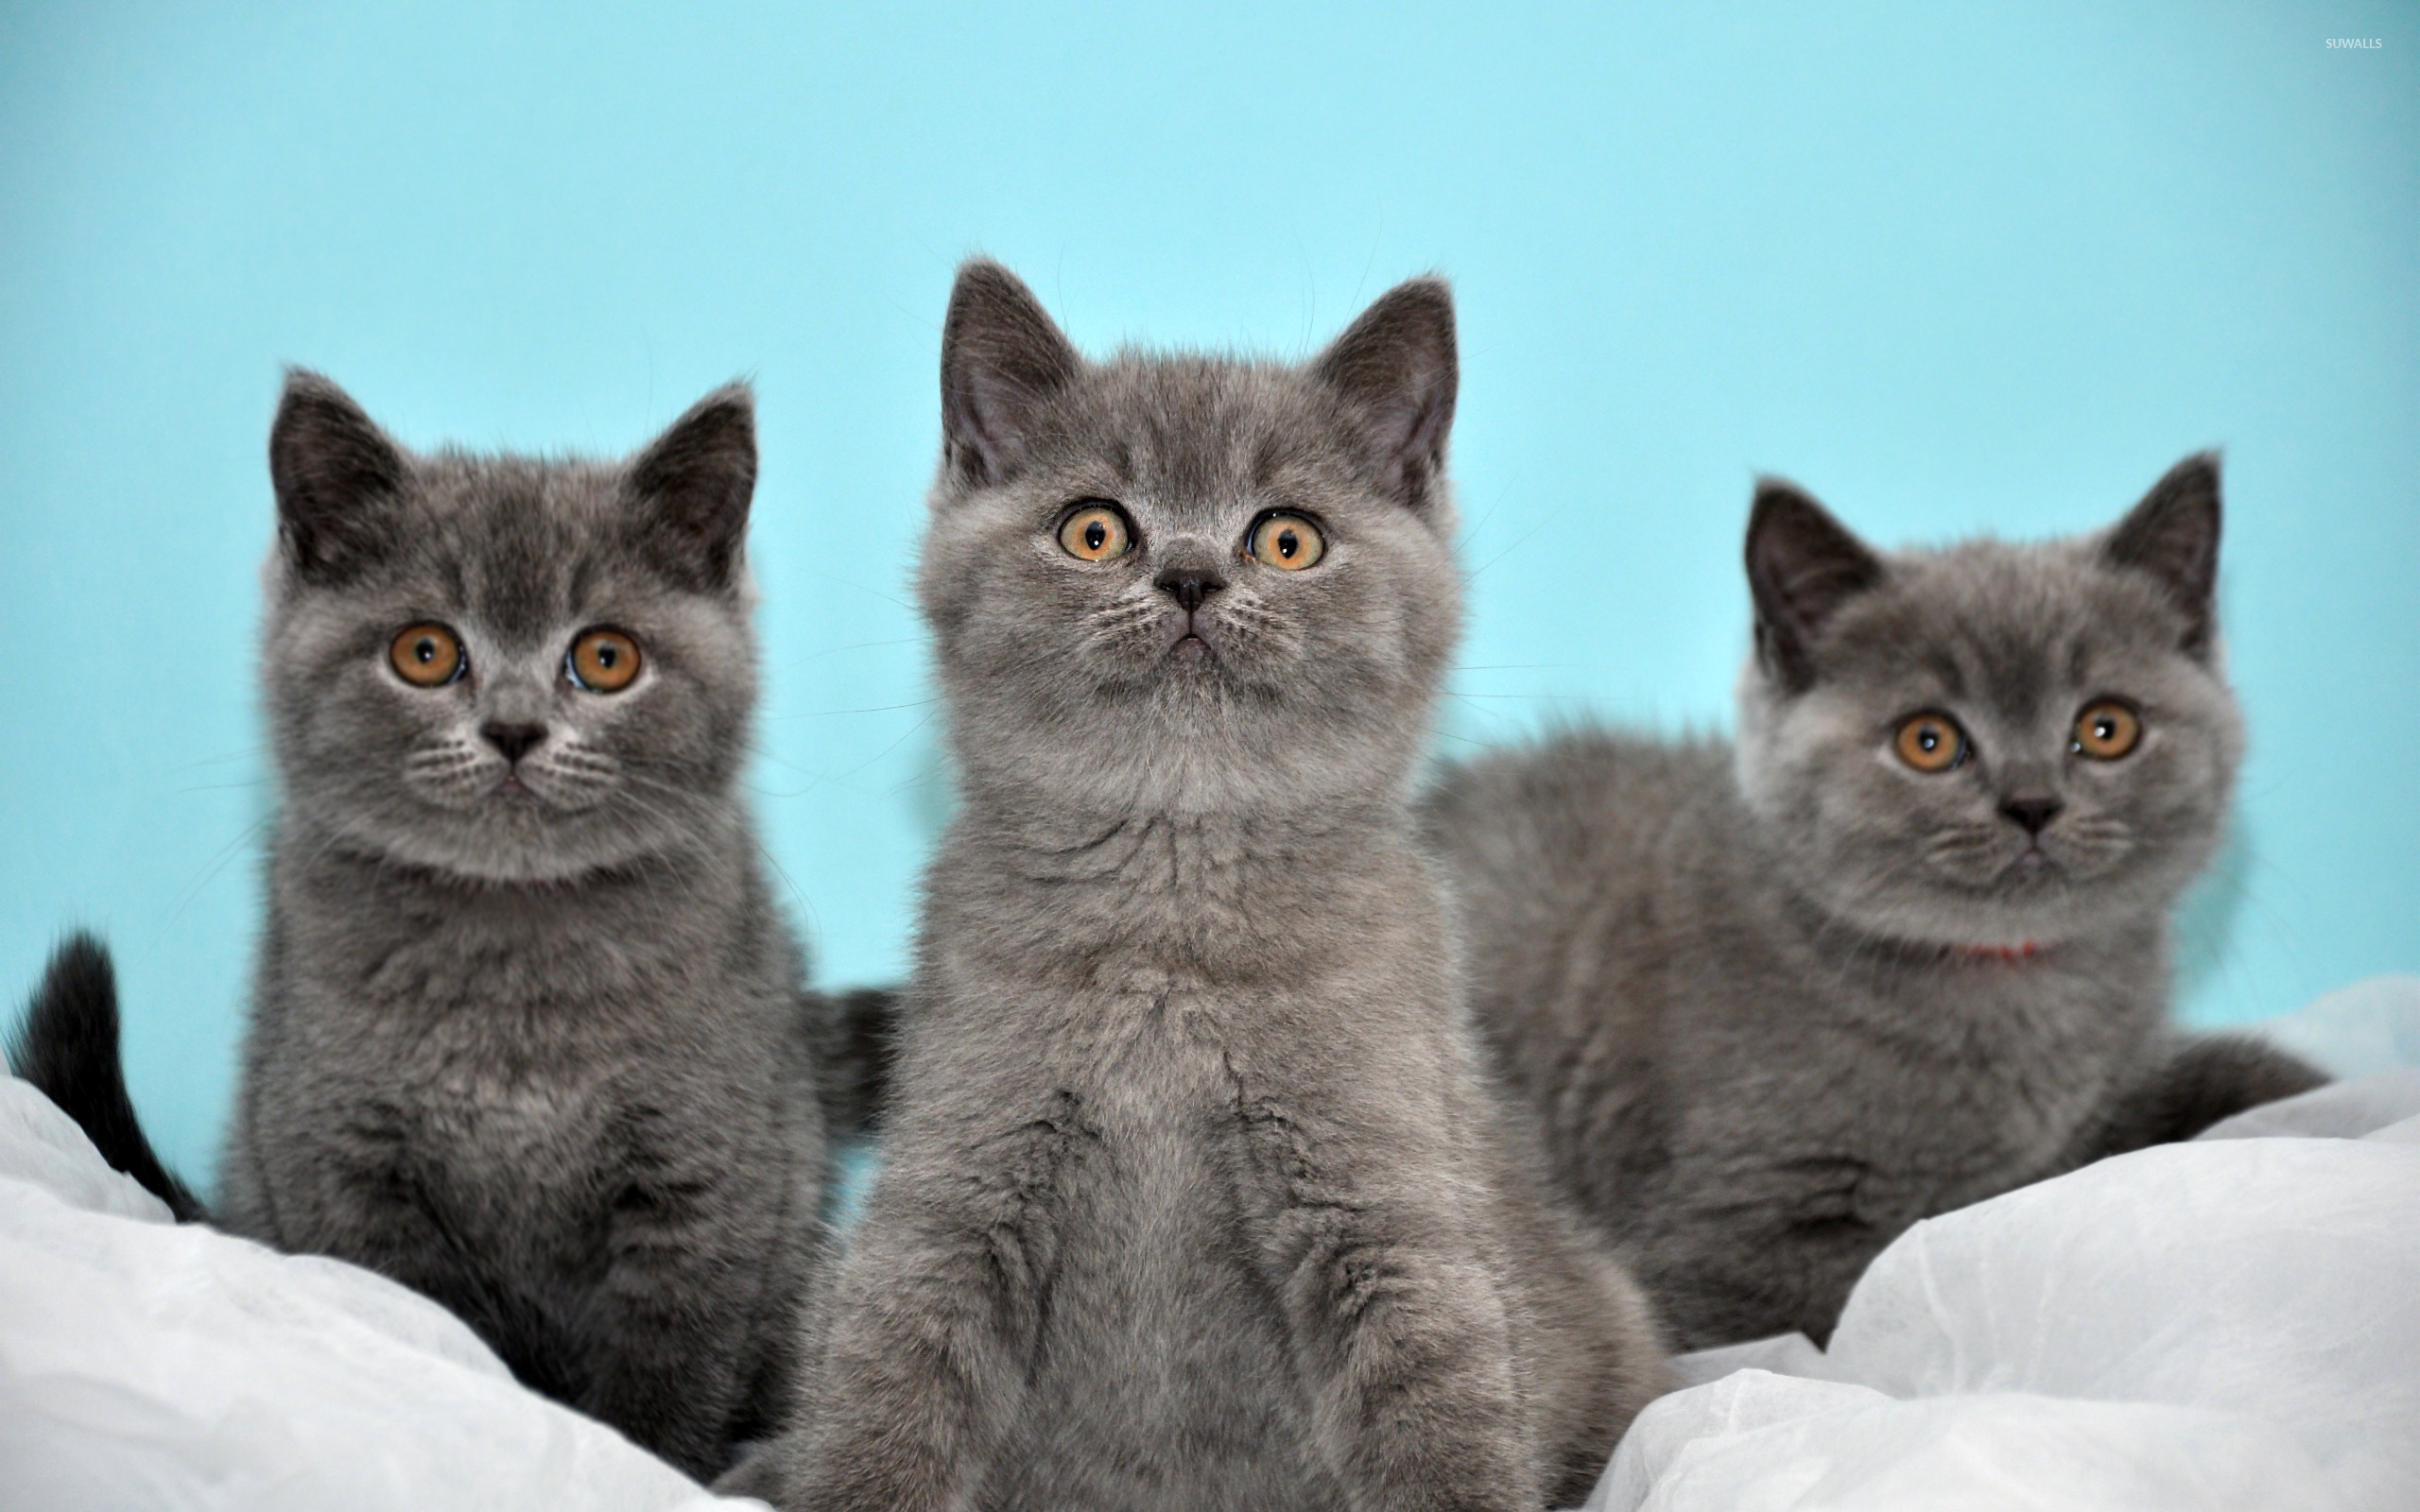 Grey kittens wallpaper animal wallpapers 17760 grey kittens wallpaper thecheapjerseys Choice Image